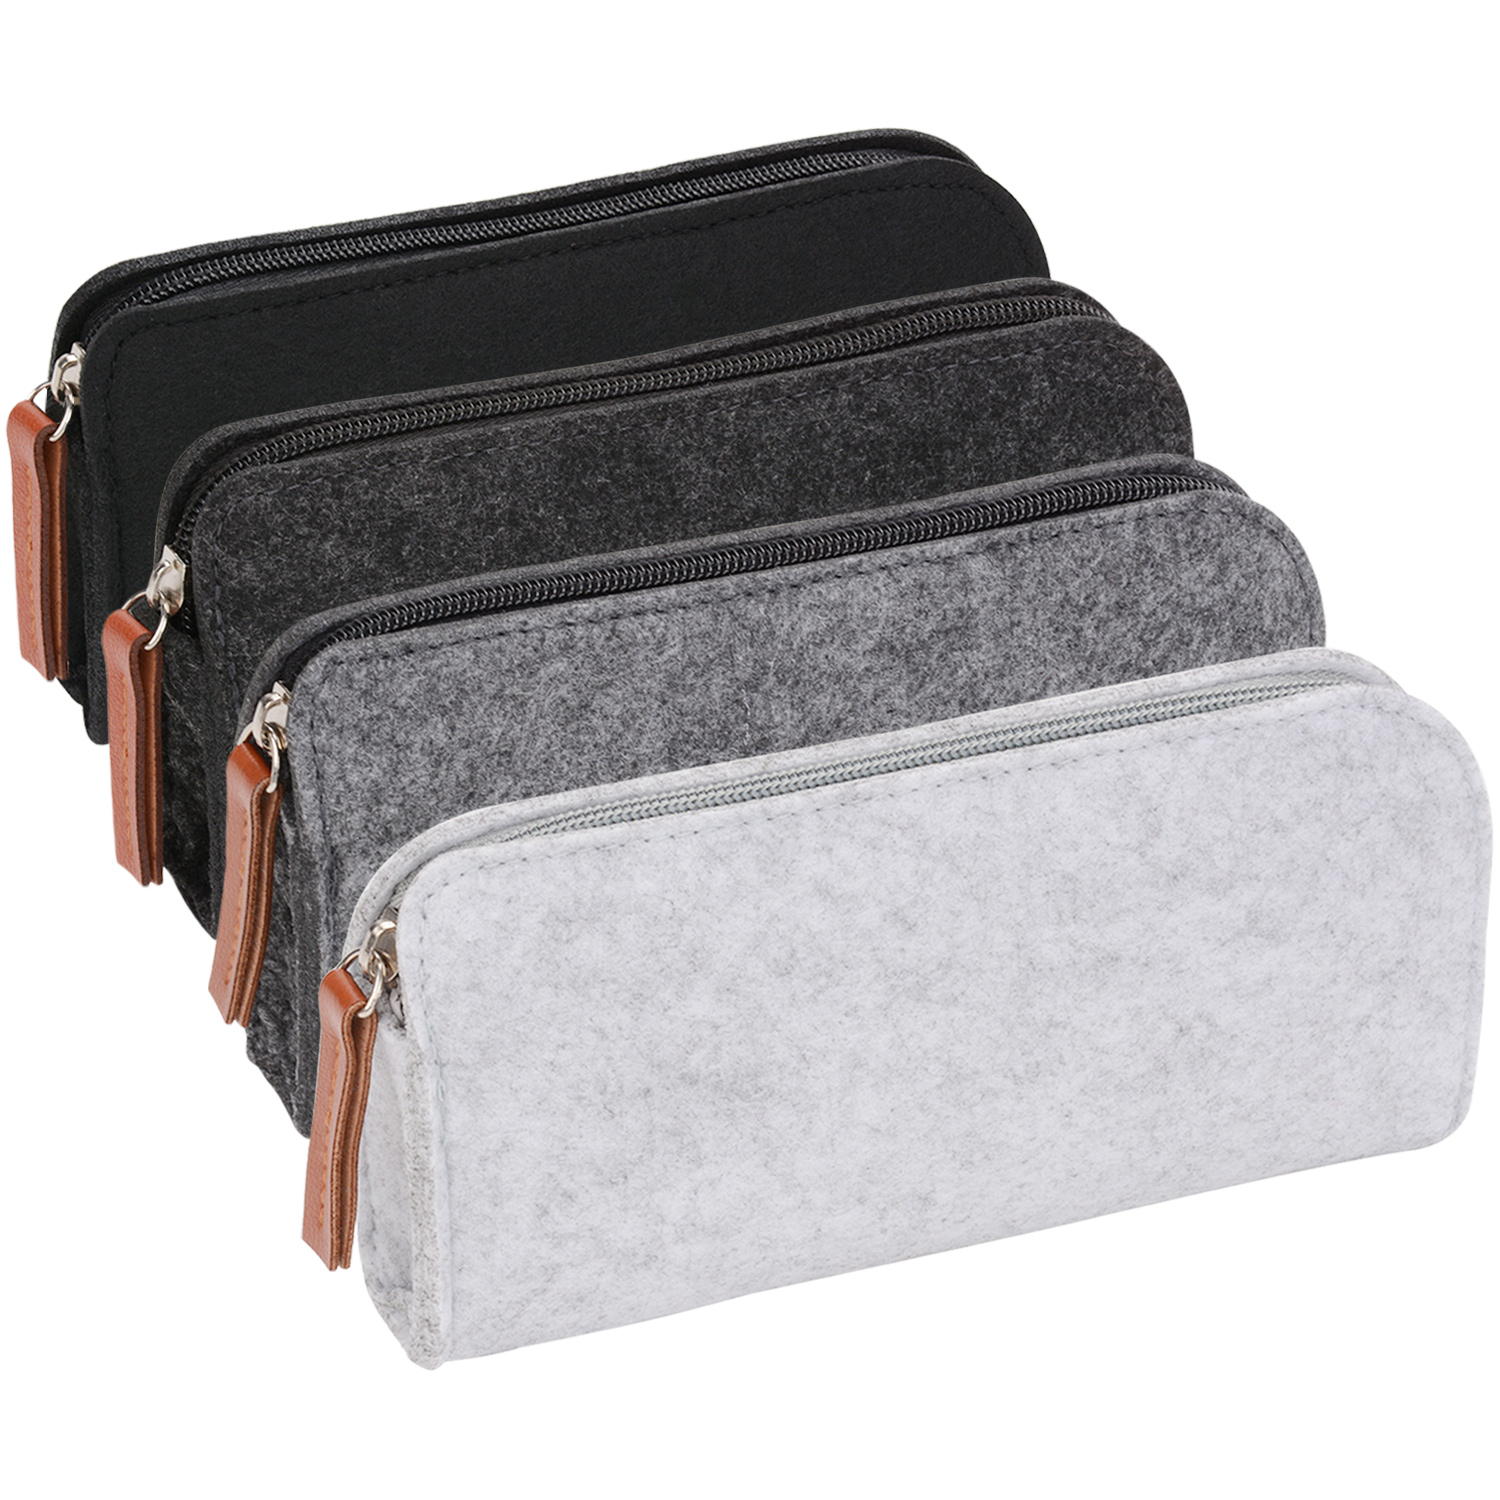 4PCS Felt Pencil Case/ Stationery Case/Makeup Bag